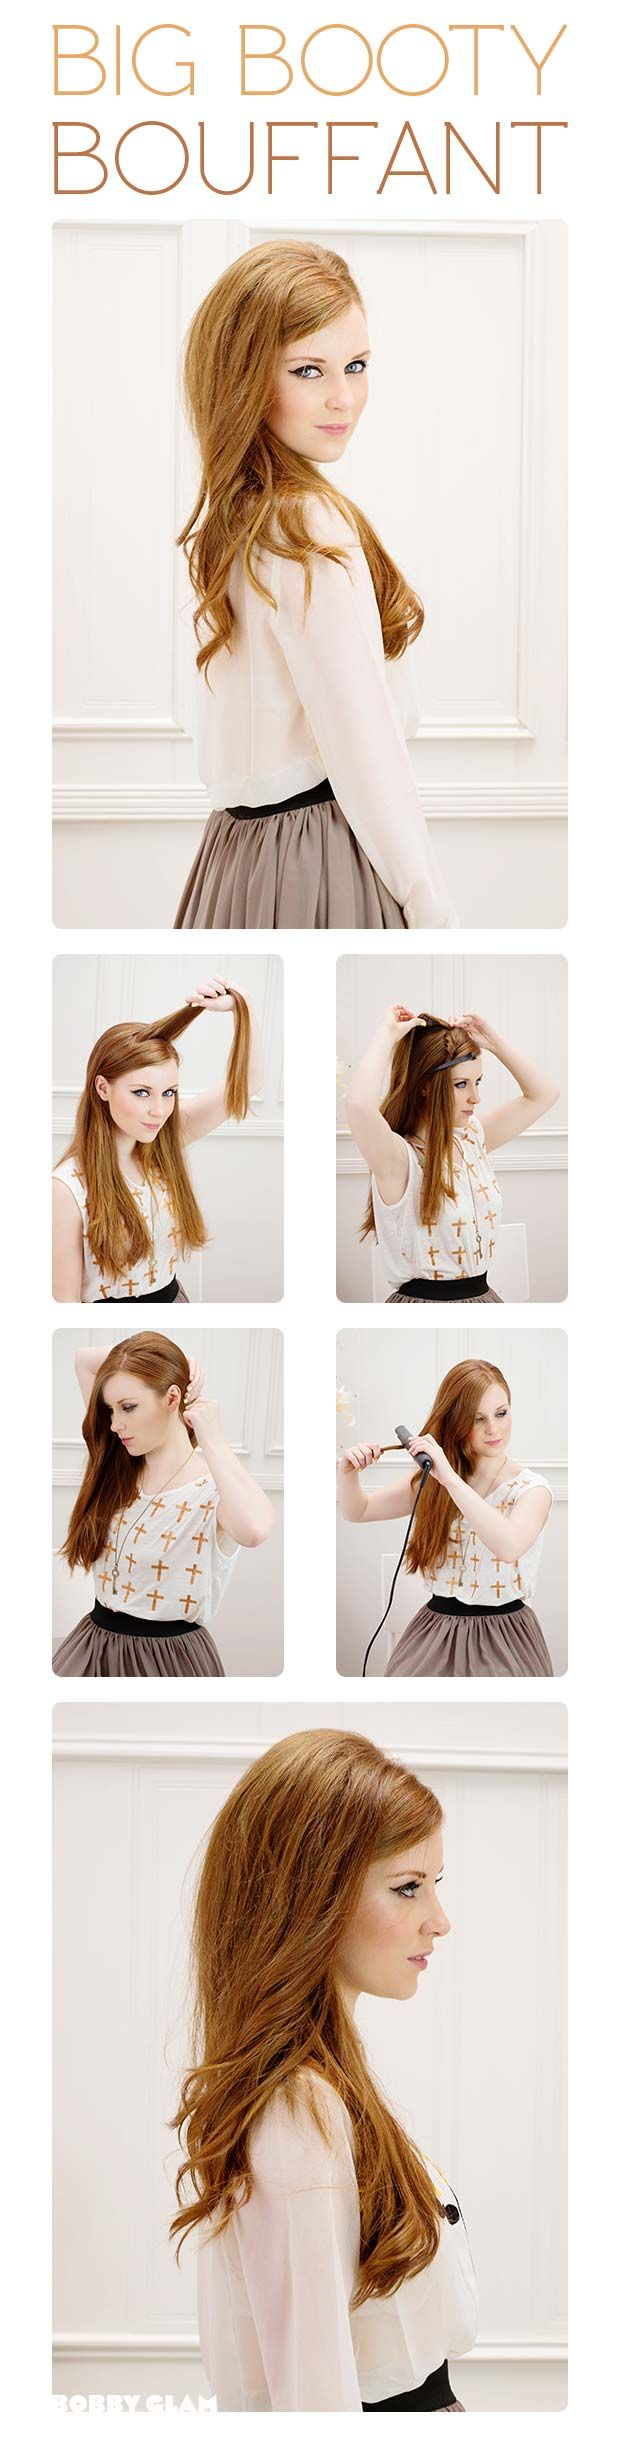 The word Bouffant makes me giggle:) Anyways, this tutorial is pretty sweet!